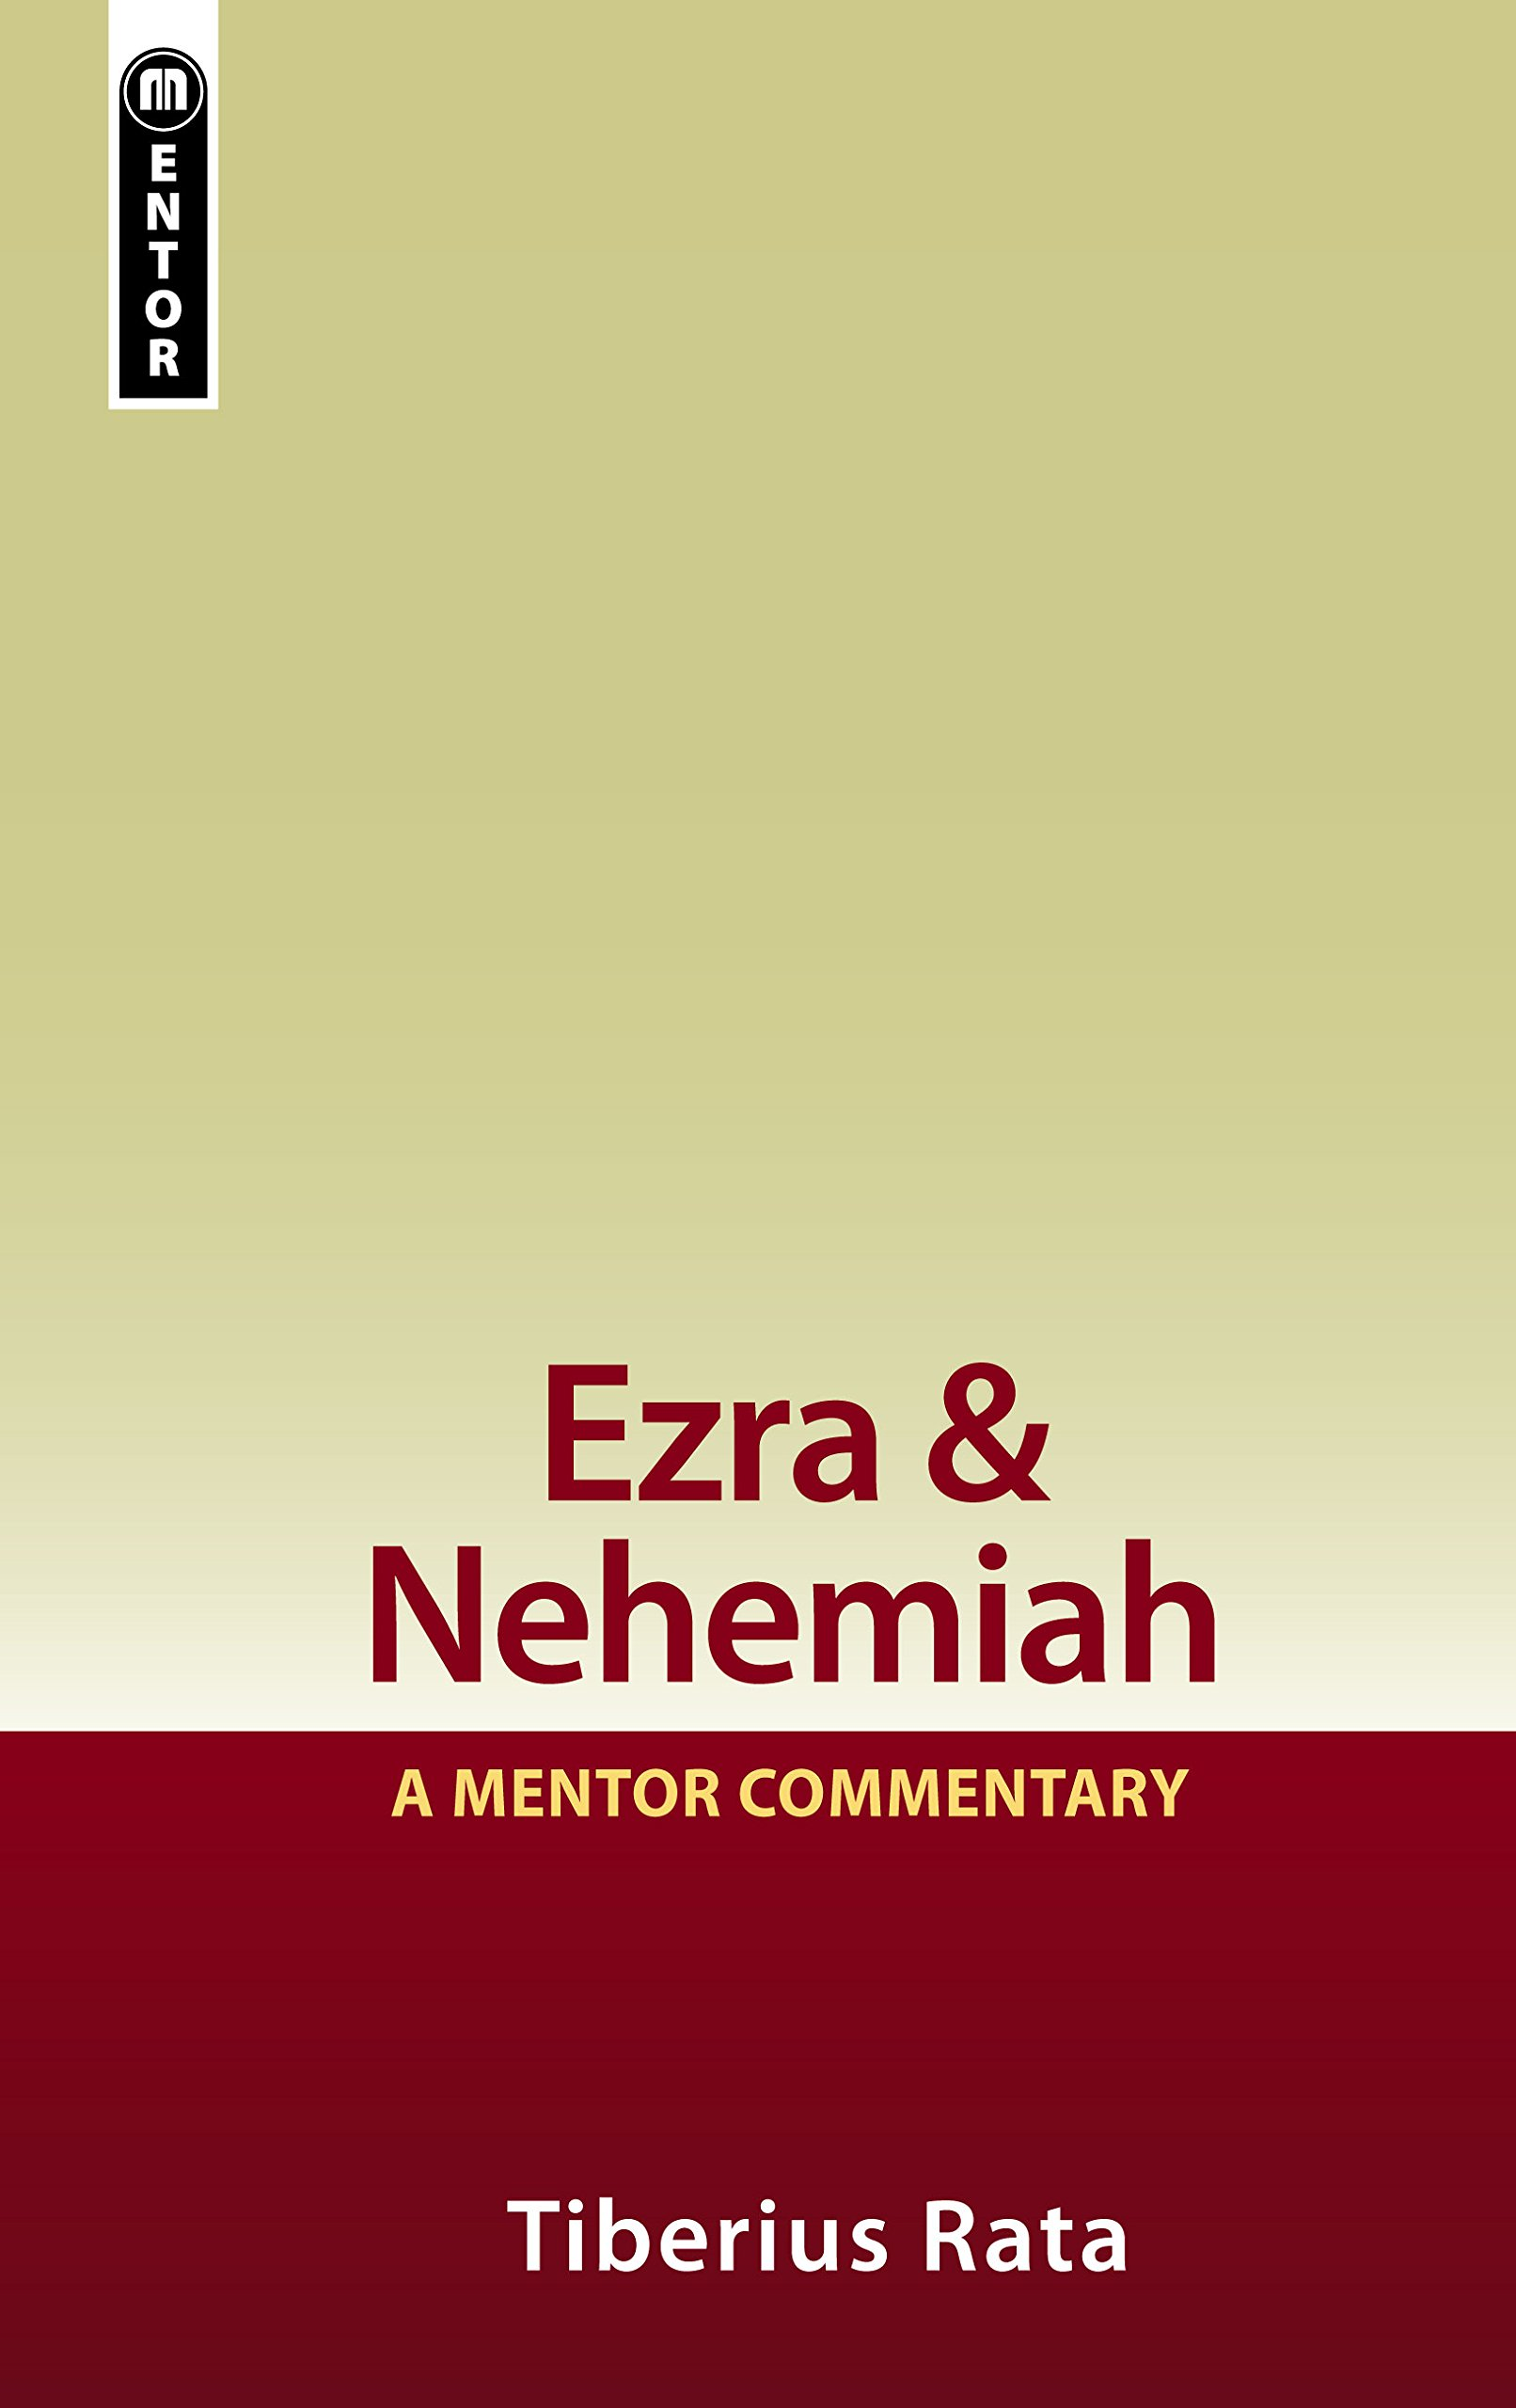 Cover for Ezra & Nehemiah: A Mentor Commentary